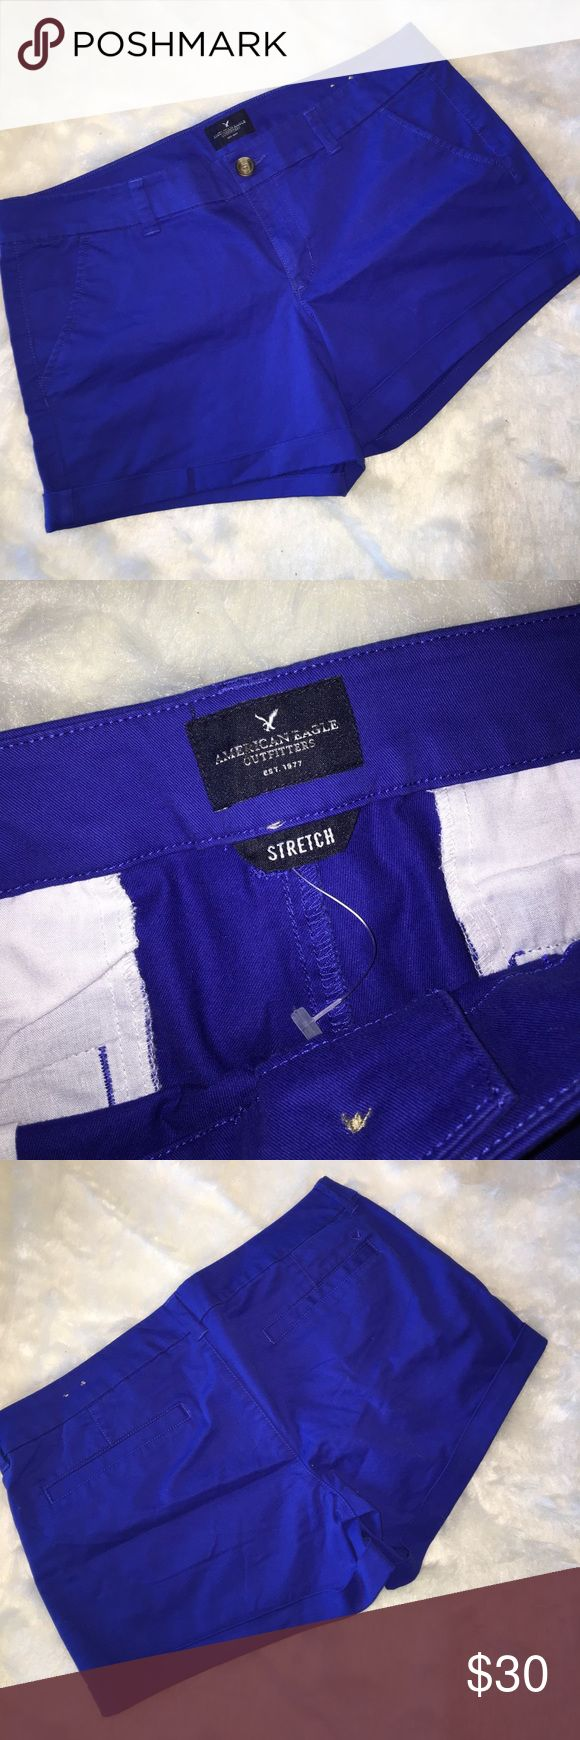 NWOT American Eagle royal blue shorts Royal blue shorts never worn. Cuffed bottoms and front and back pockets and belt loops American Eagle Outfitters Shorts